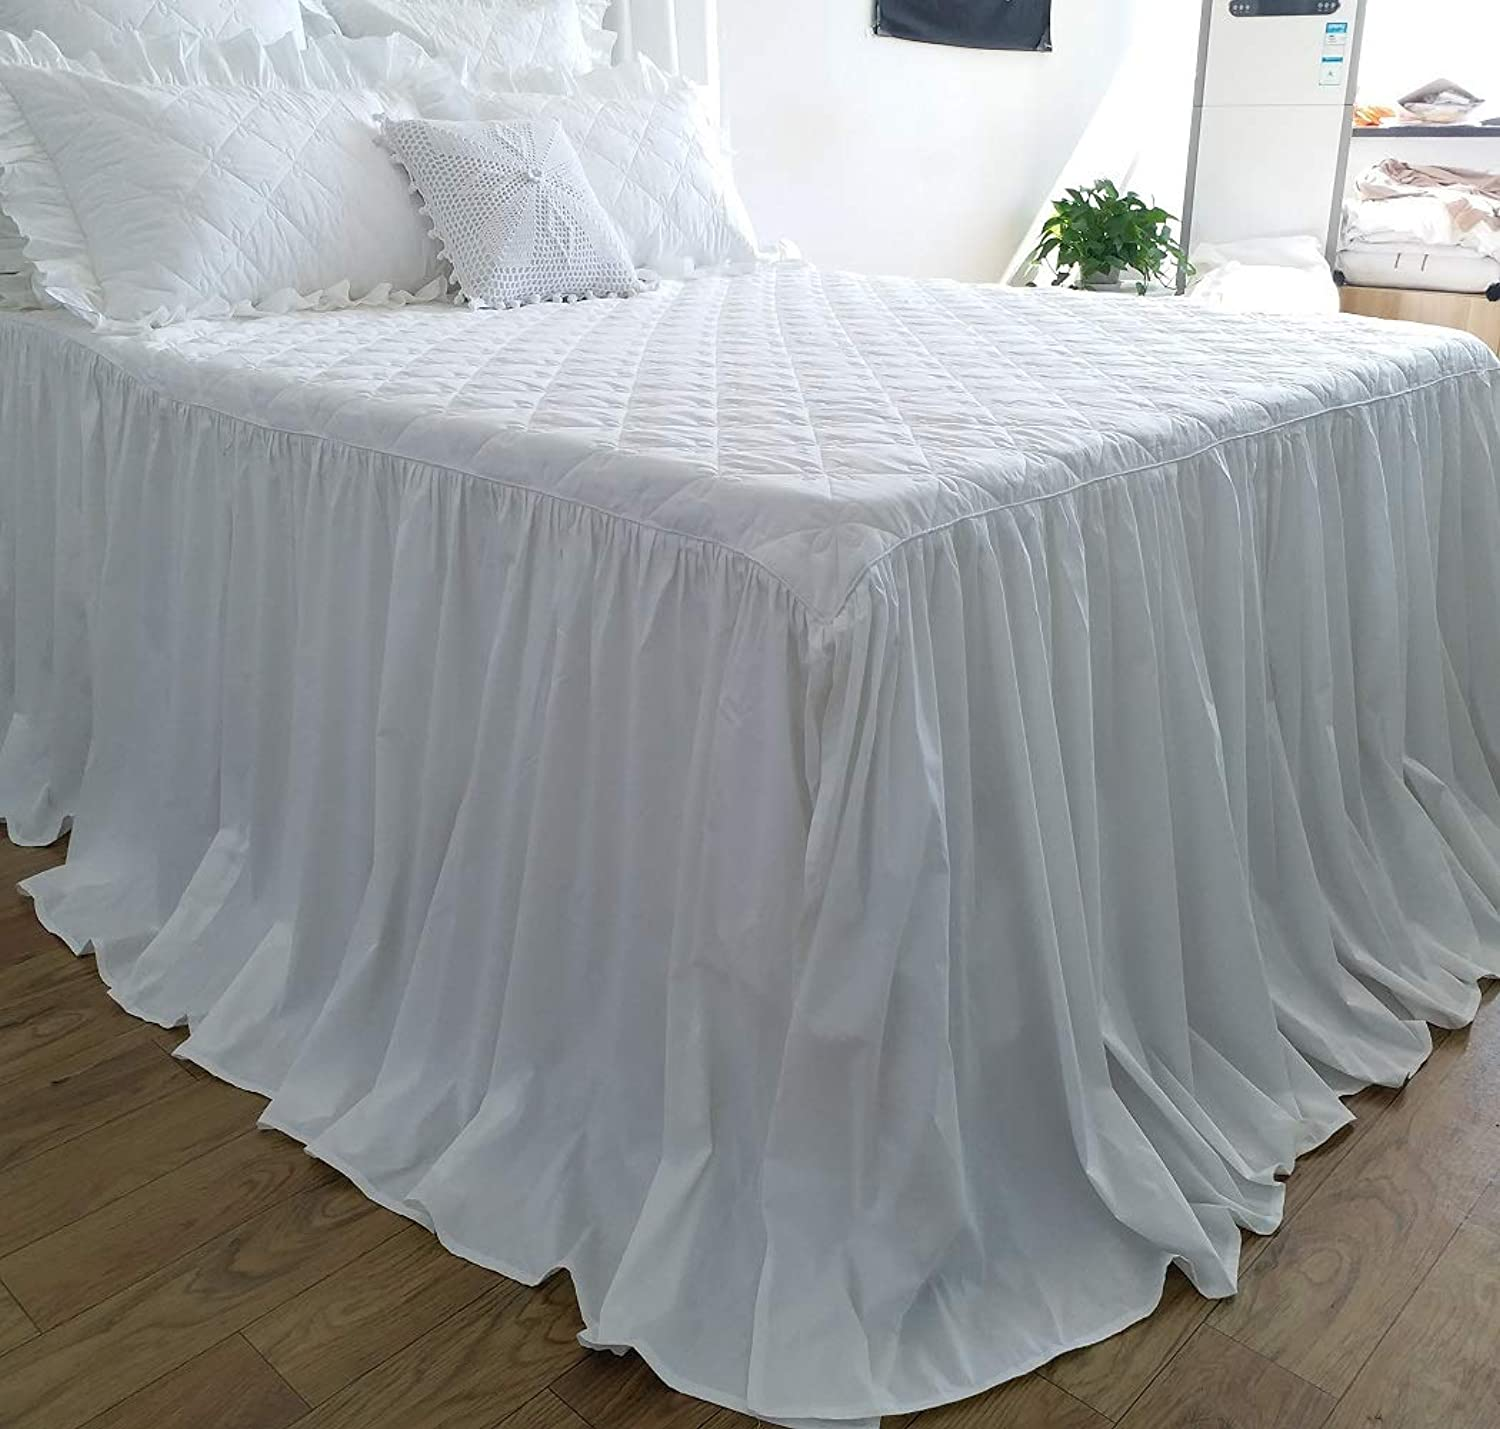 Queen's House Snow White Quilted Bedspread Bed Skirt Coverlet King Size-True White